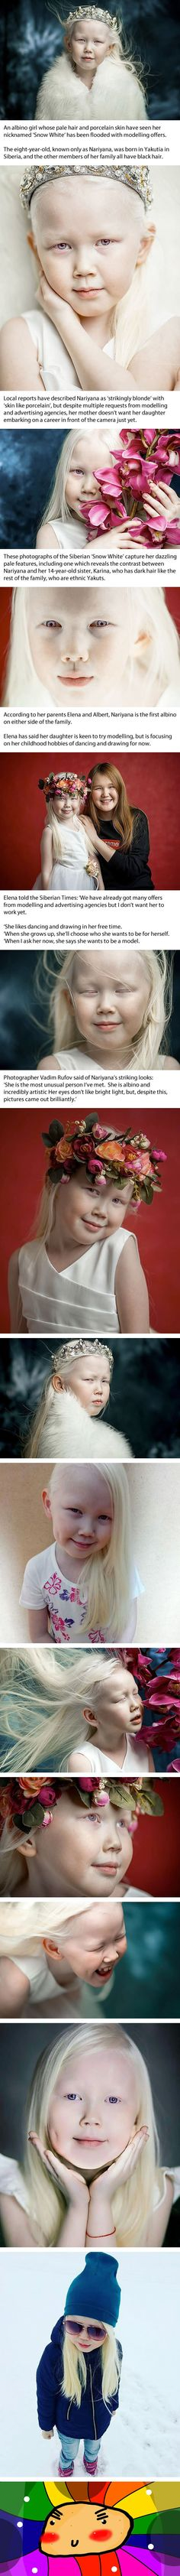 The Siberian 'Snow White': Albino girl, 8, with striking pale hair and porcelain skin is flooded with offers from modelling agencies.